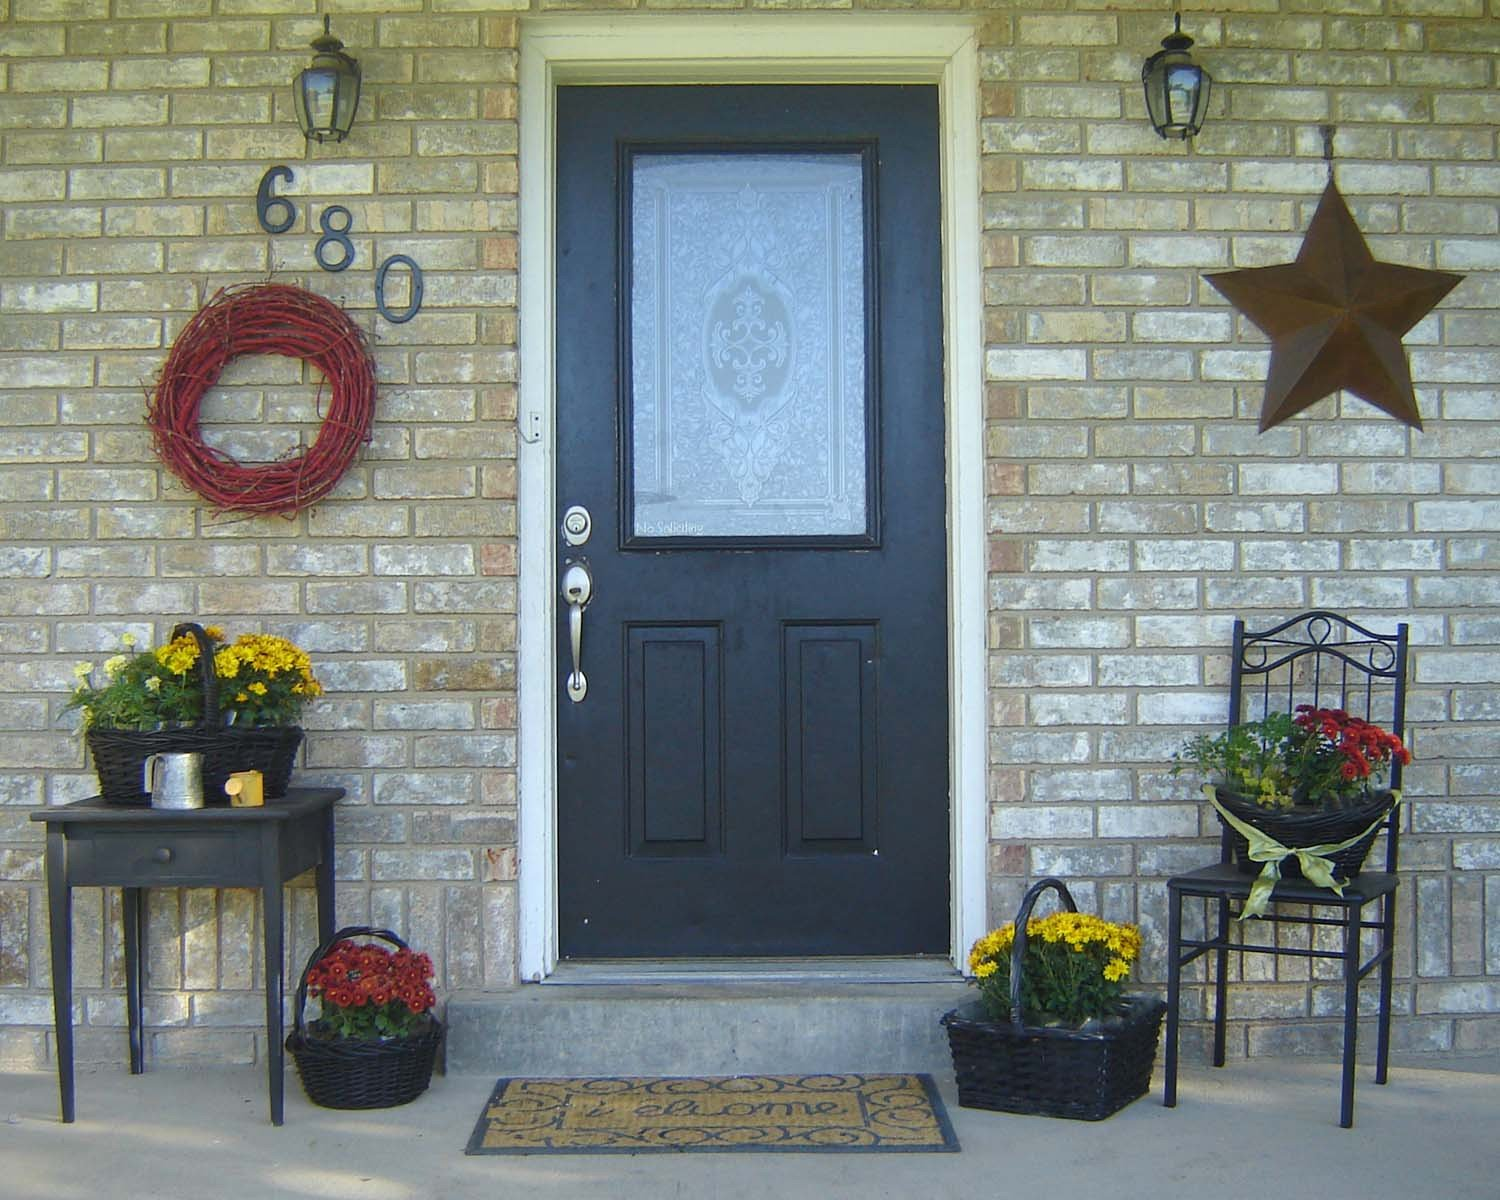 Decor Ideas for Front Porch Awesome Inexpensive Simple Front Porch Ideas From Home Hinges